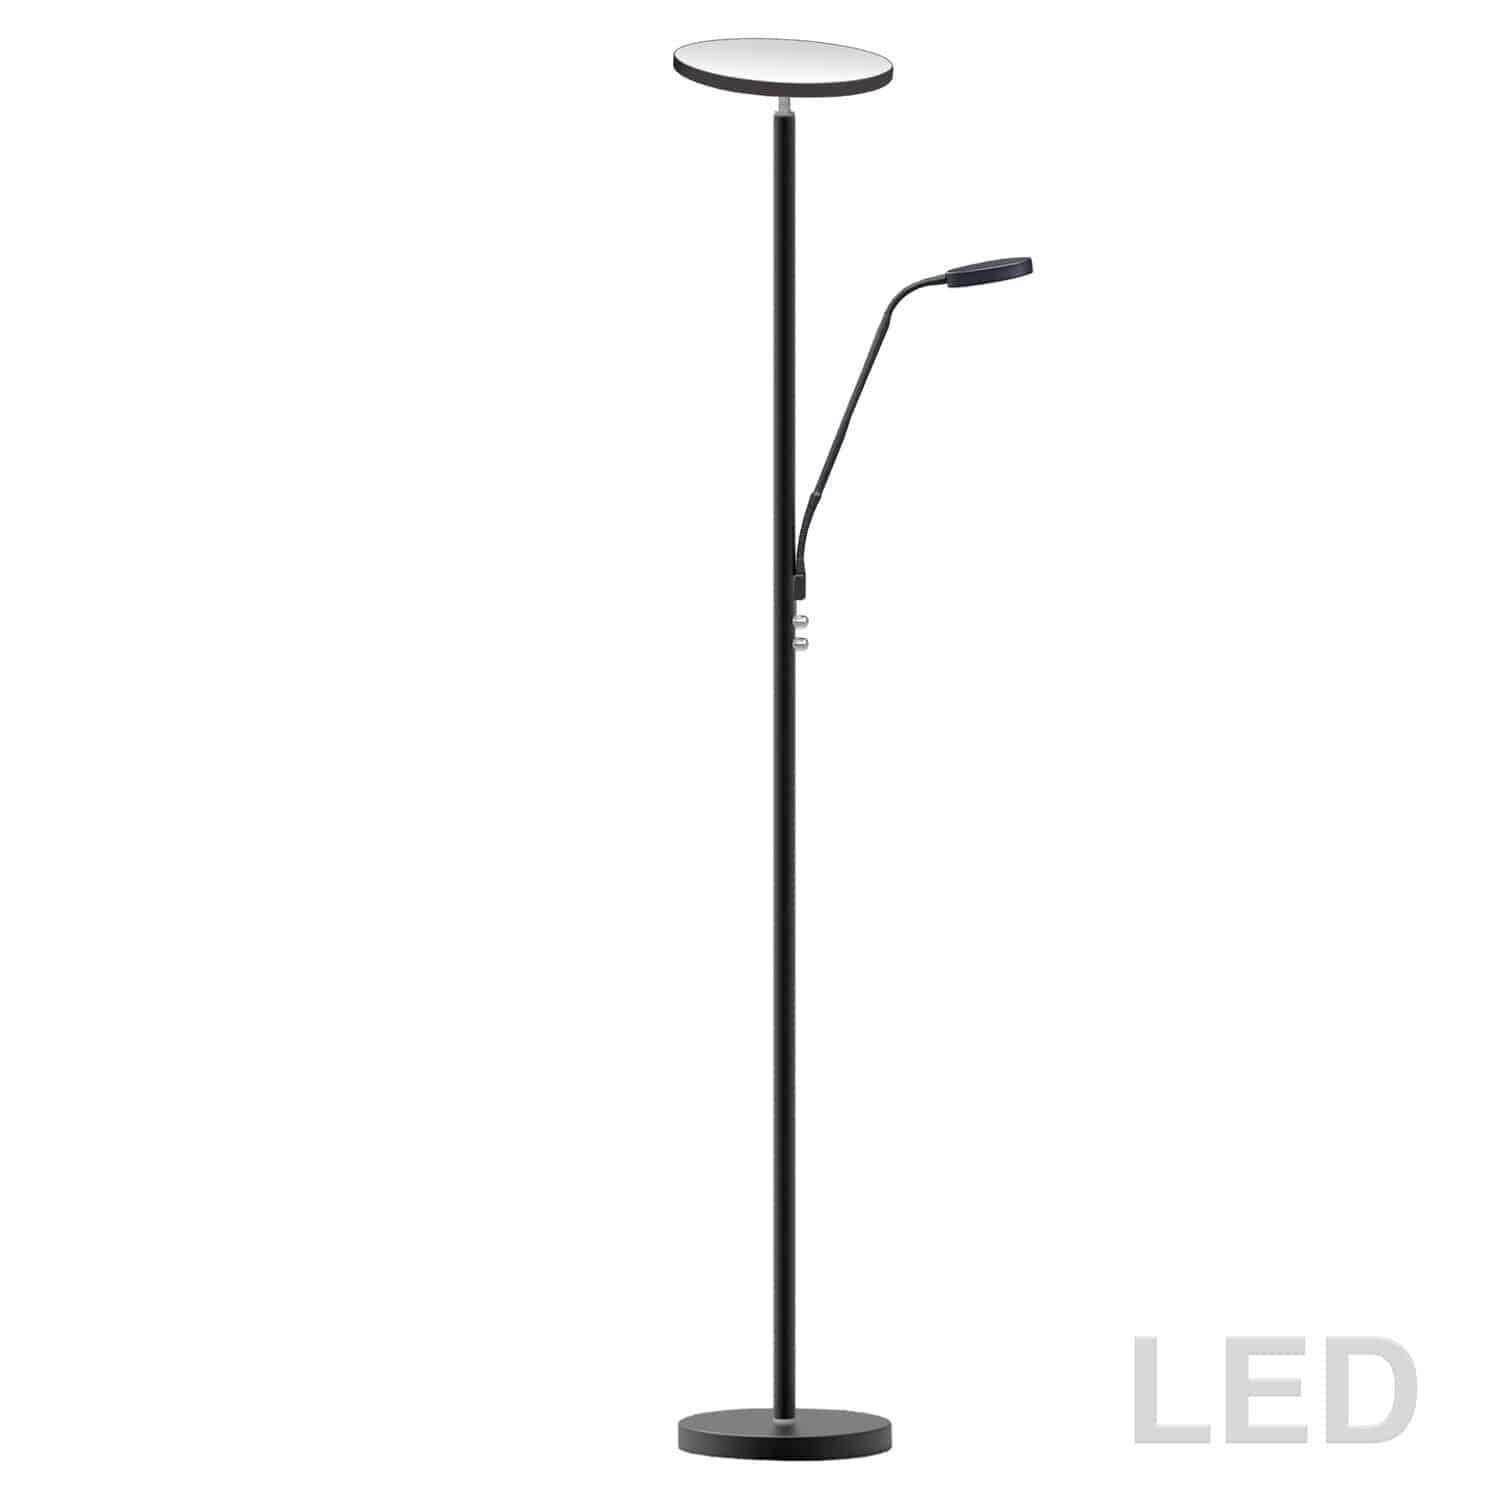 Mother and Son LED Floor Lamp, Satin Black Finish